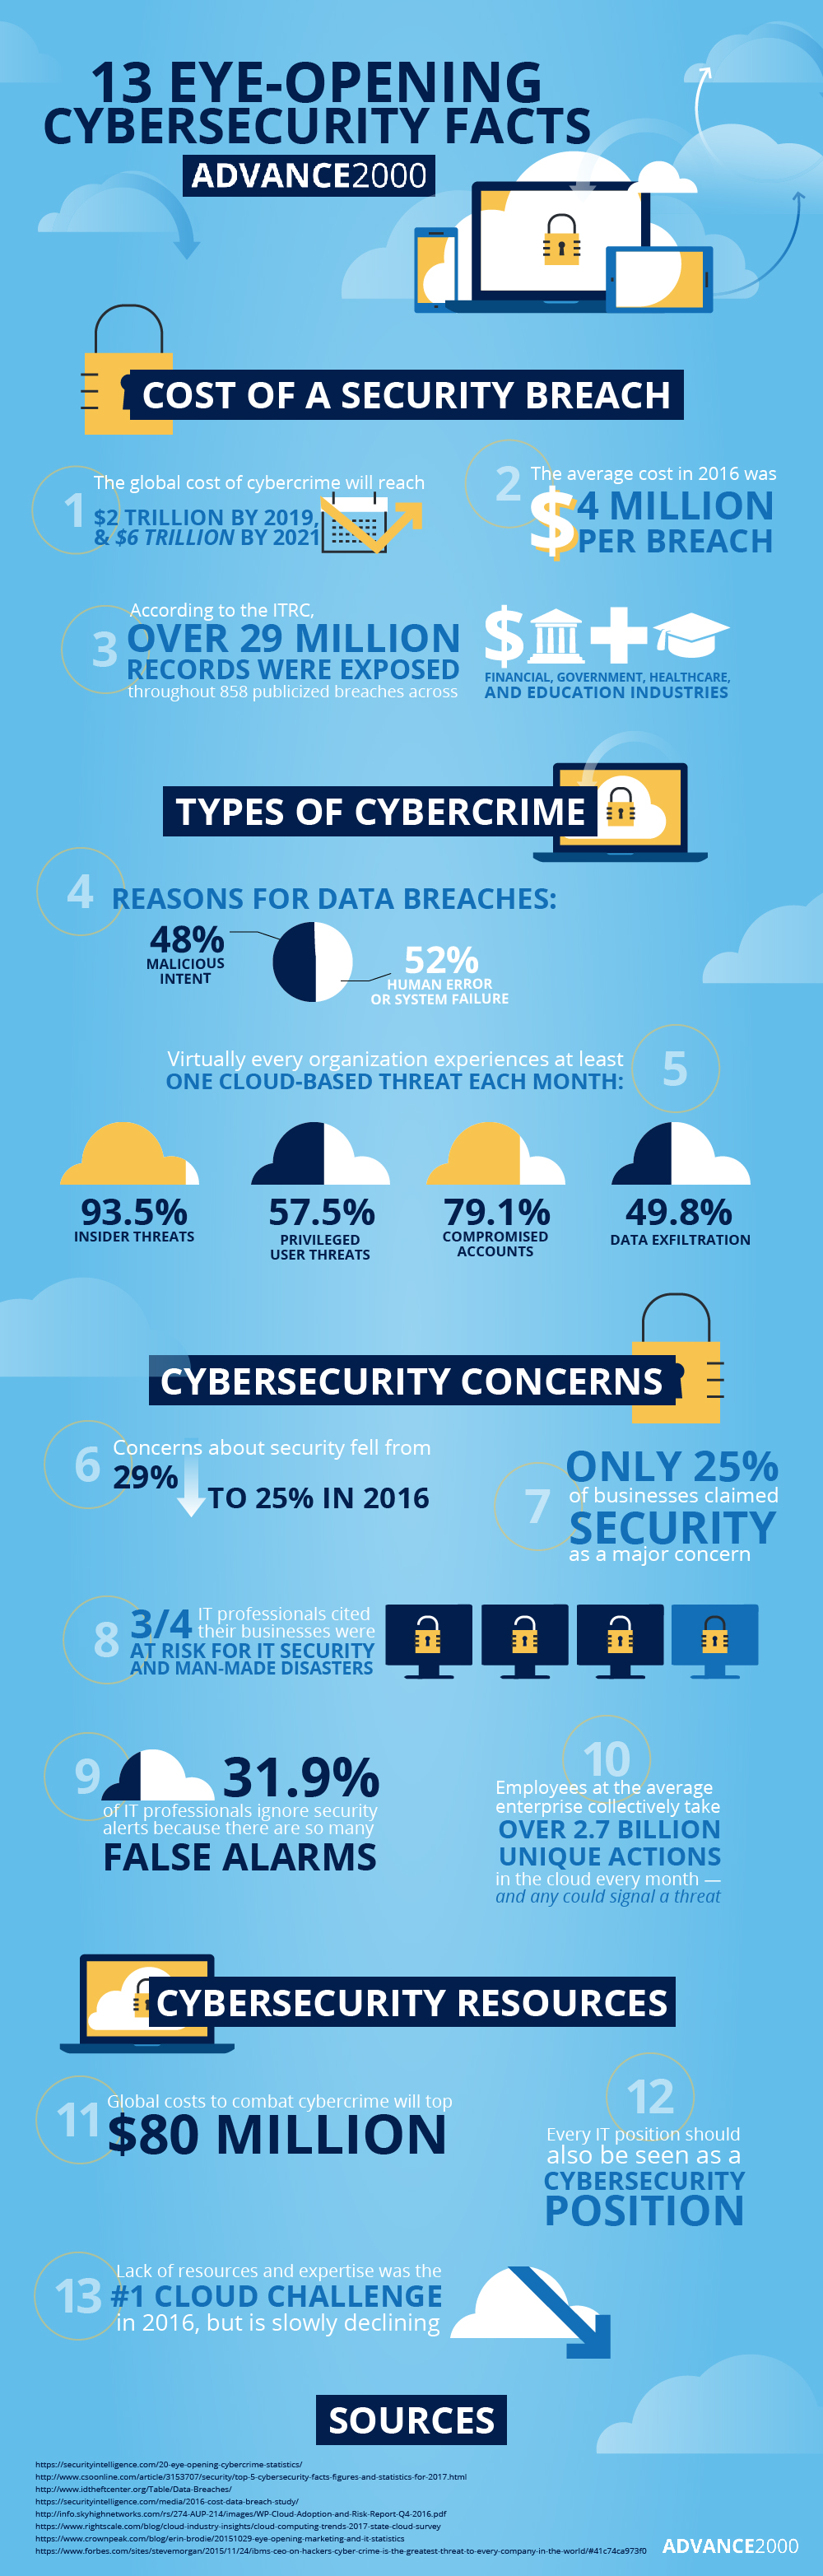 cybersecurity-facts-infographic